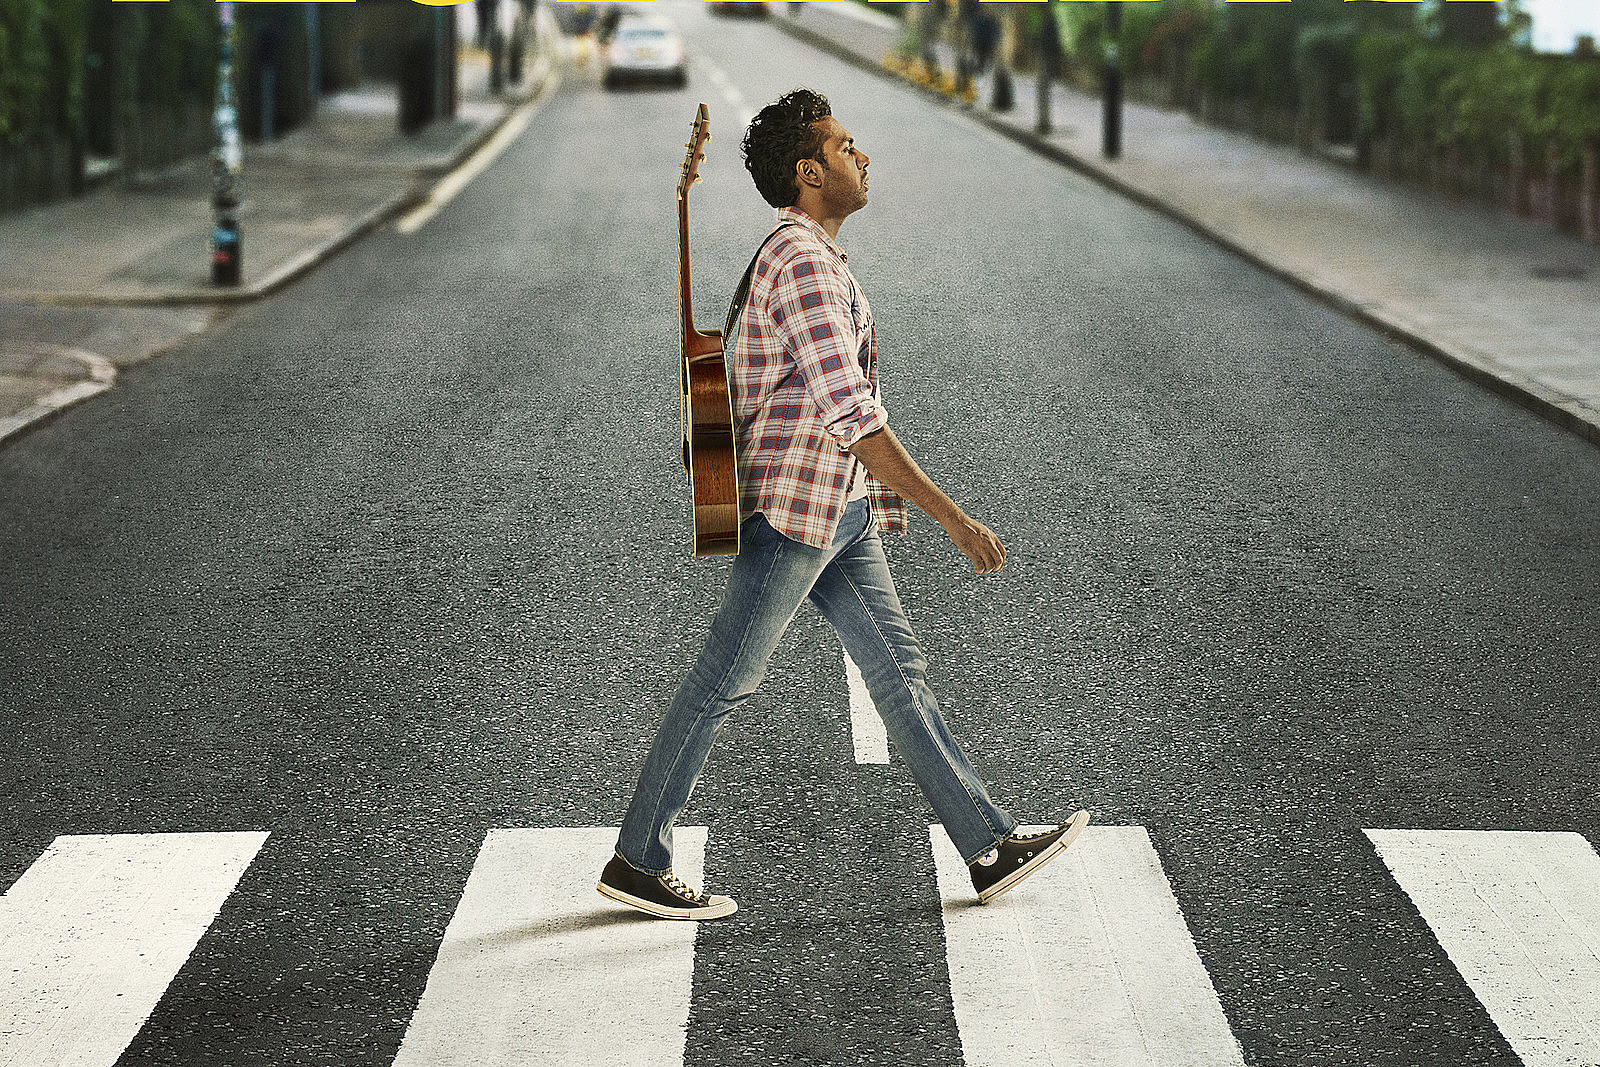 Beatles-Inspired 'Yesterday' Movie's Home Video Release Announced